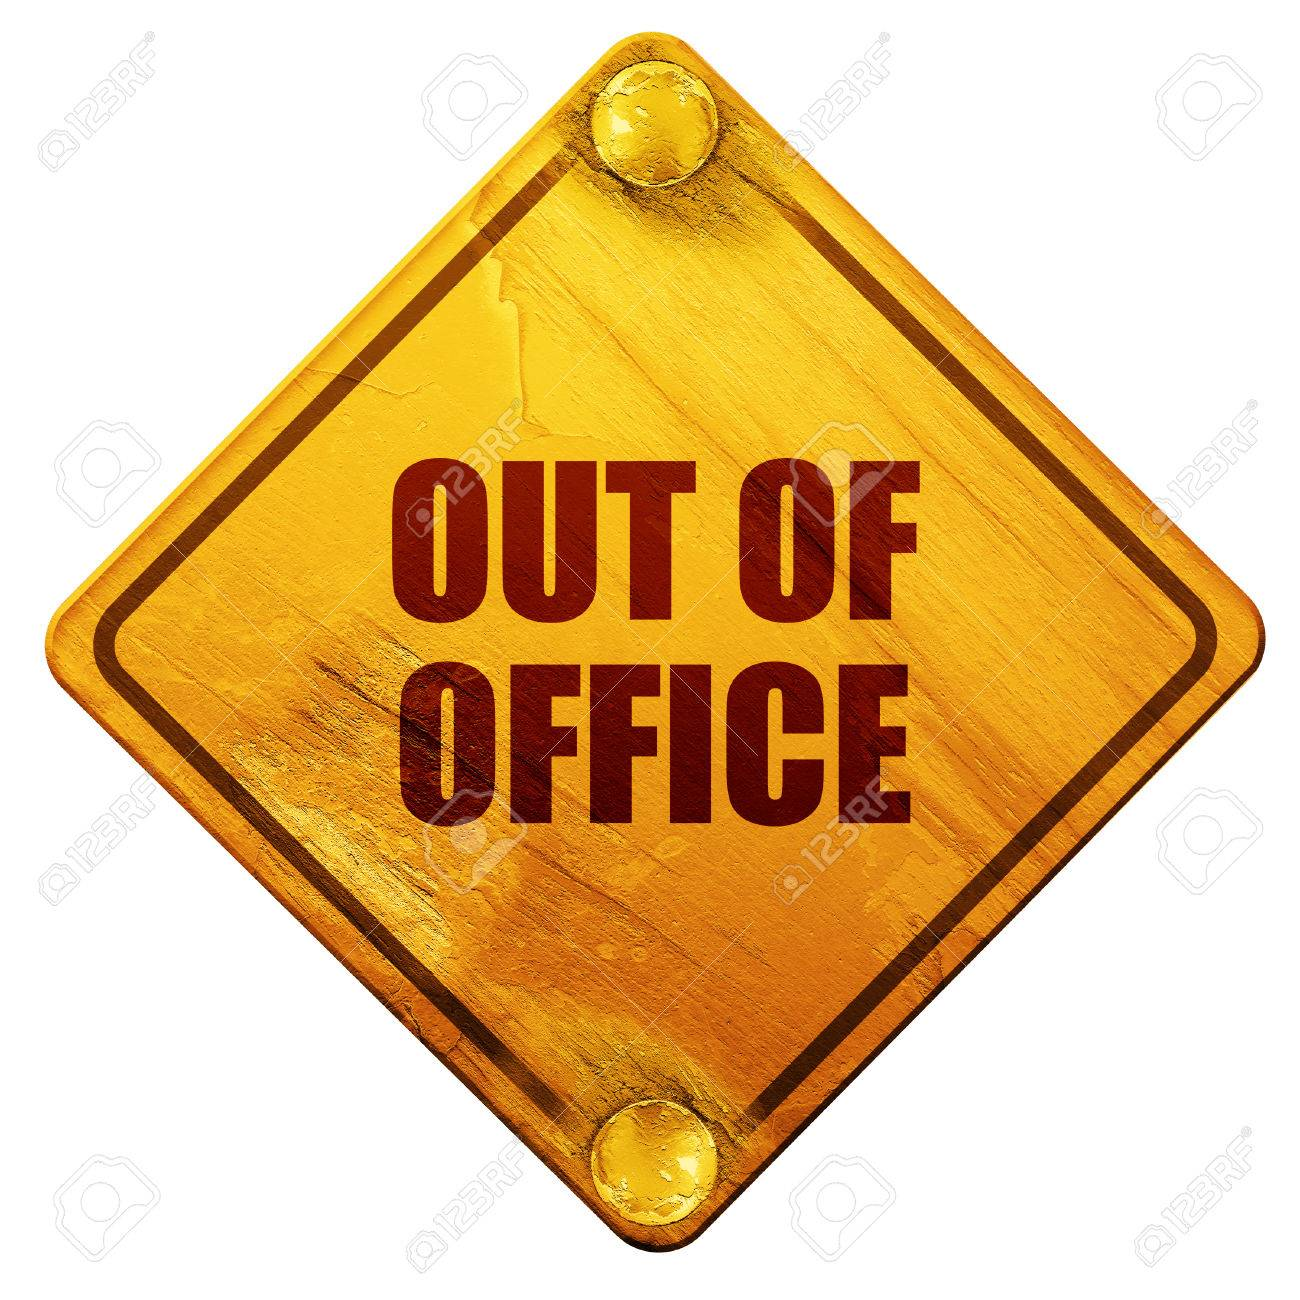 out of office 3d rendering yellow road sign on a white background rh 123rf com out of office clipart out of office clipart